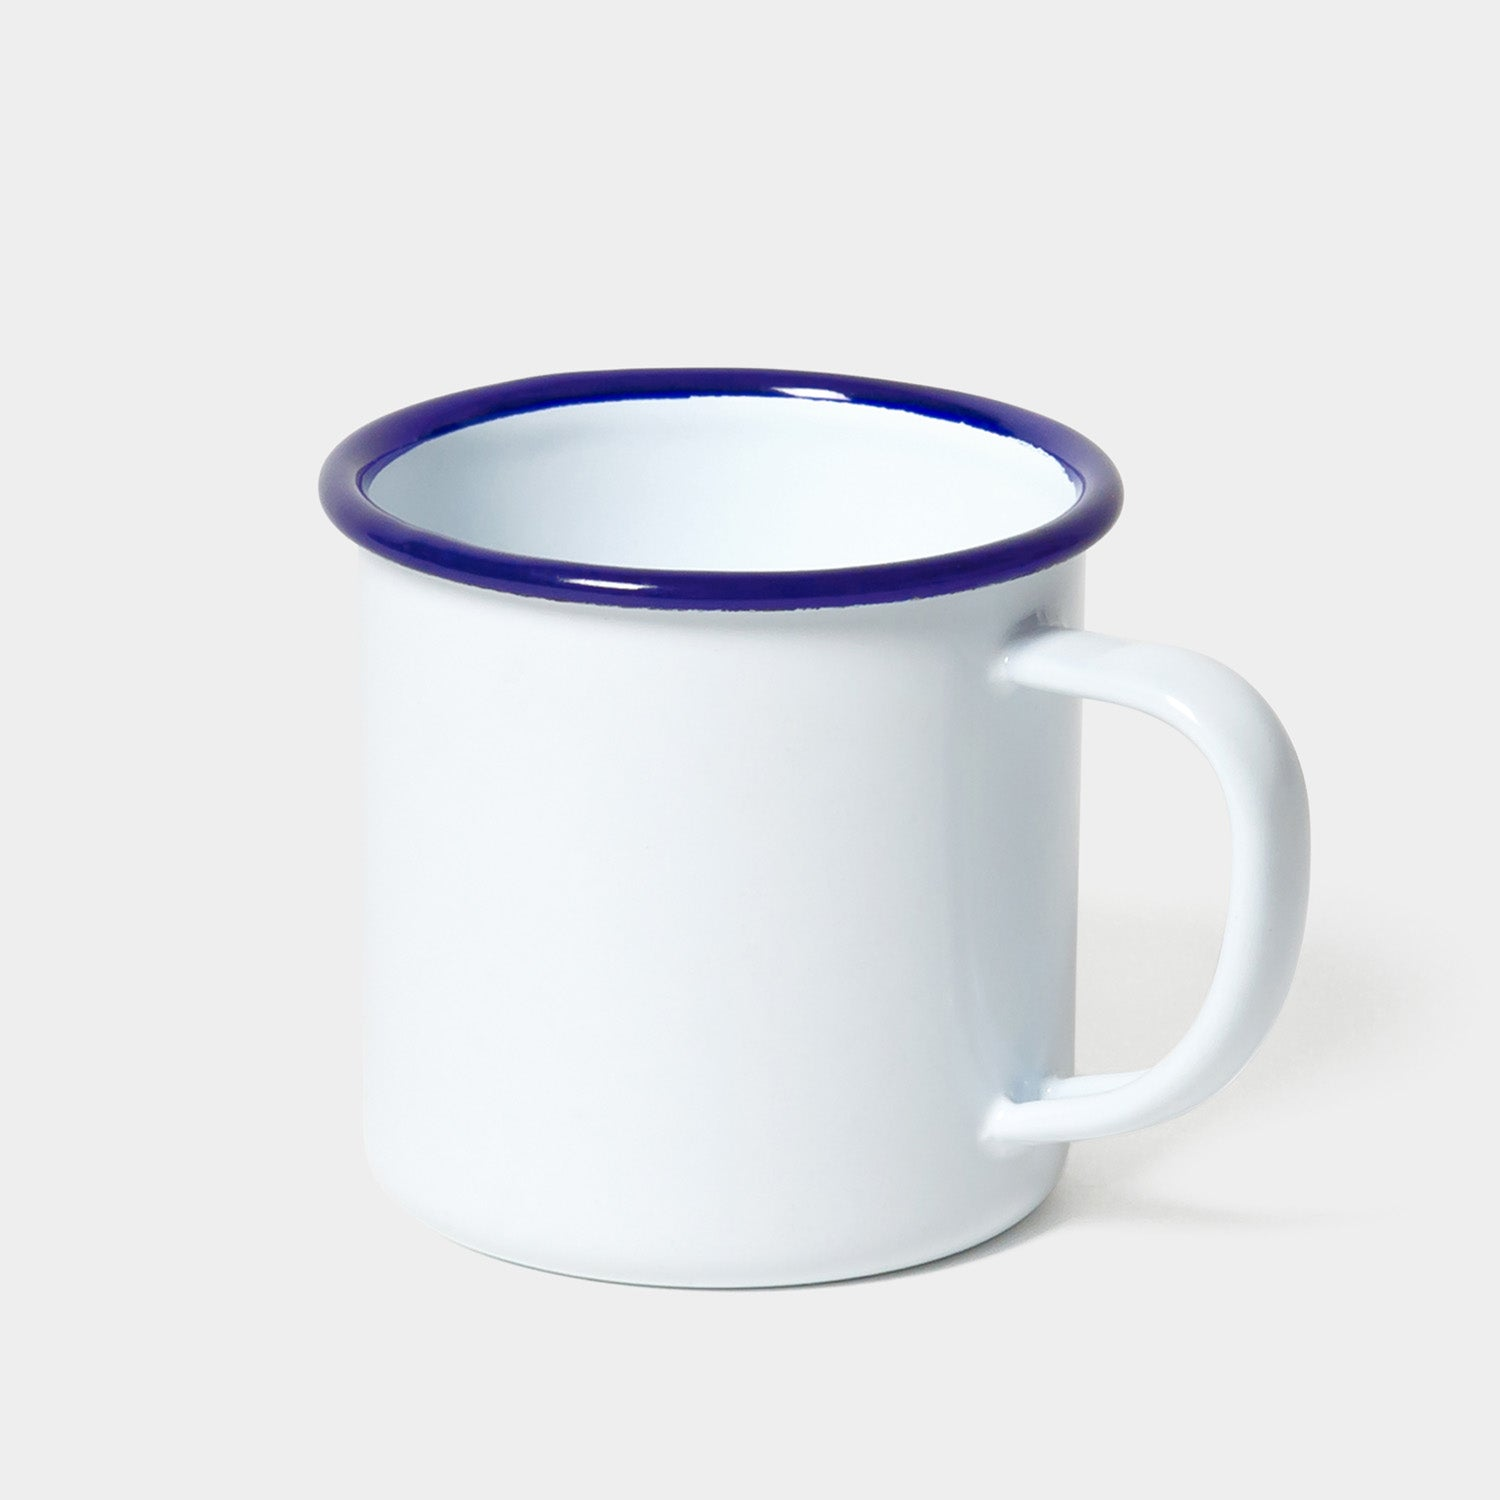 Falcon Original Enamel Mug - White with Blue Rim